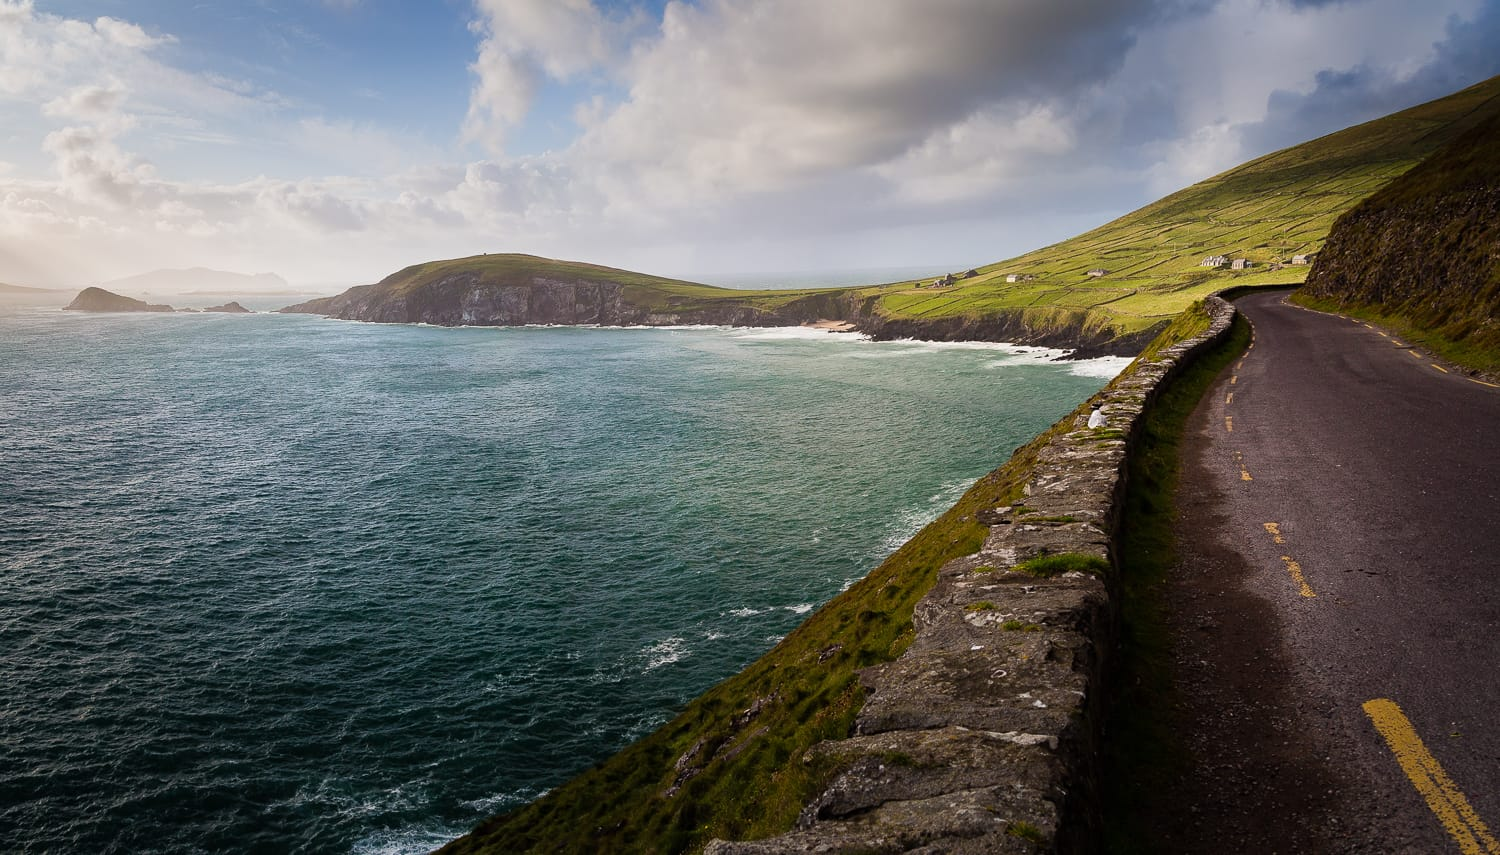 https://i0.wp.com/digital-photography-school.com/wp-content/uploads/2018/10/slea_head,_dingle,_ireland.jpg?resize=1500%2C855&ssl=1